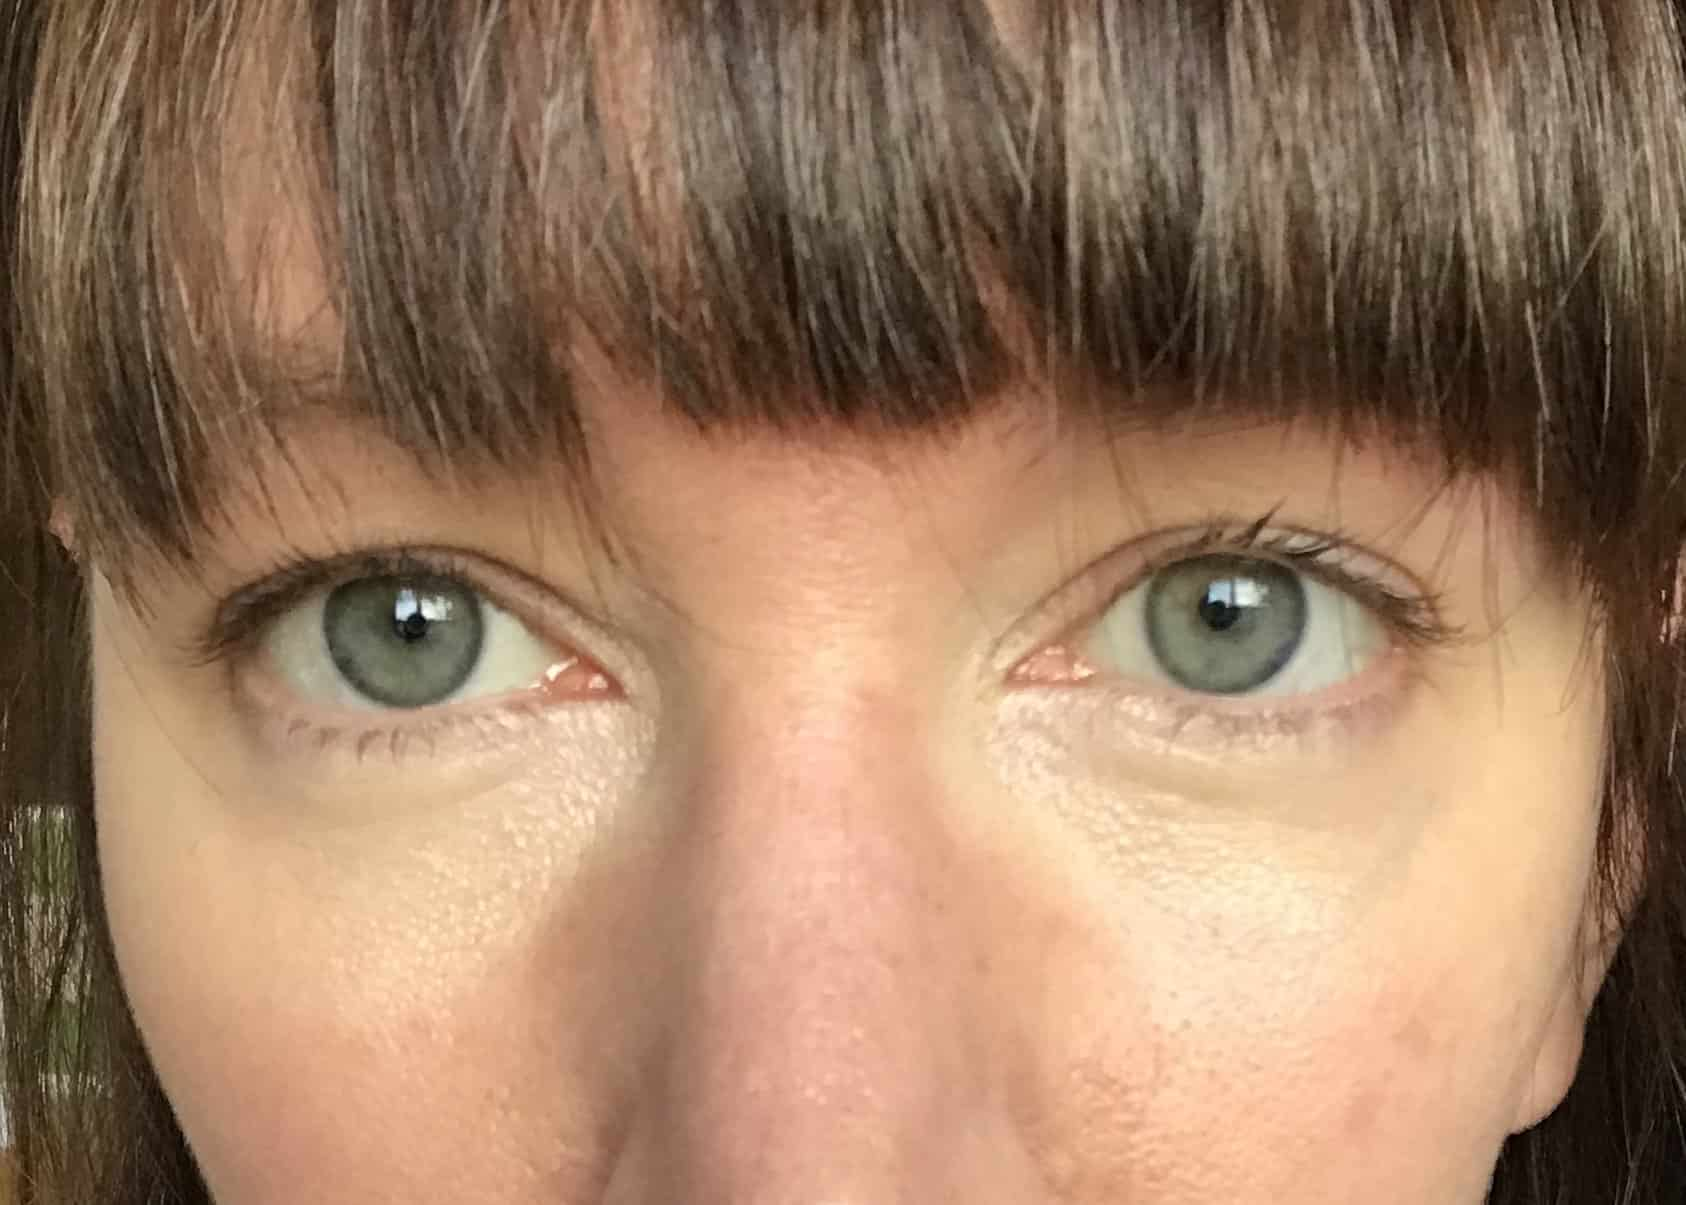 First layer of concealer to disguise dark undereye circles